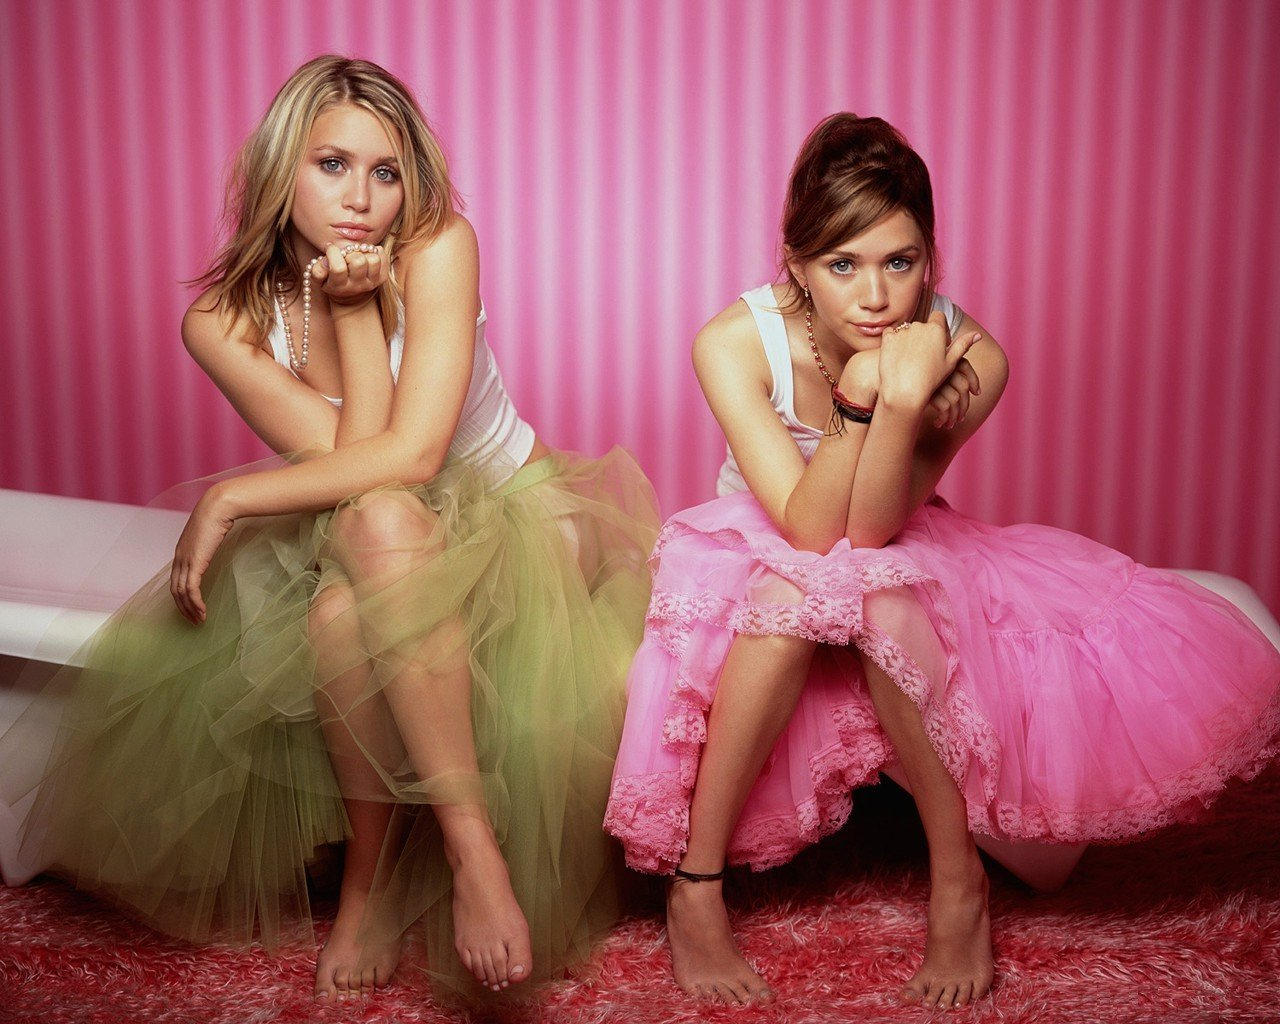 http://1.bp.blogspot.com/-3HmV0HbzuN0/TxMYuBgKB9I/AAAAAAAAAXM/m22G9VQo5Ro/s1600/Mary_-_Kate_and_Ashley_Olsen.jpg